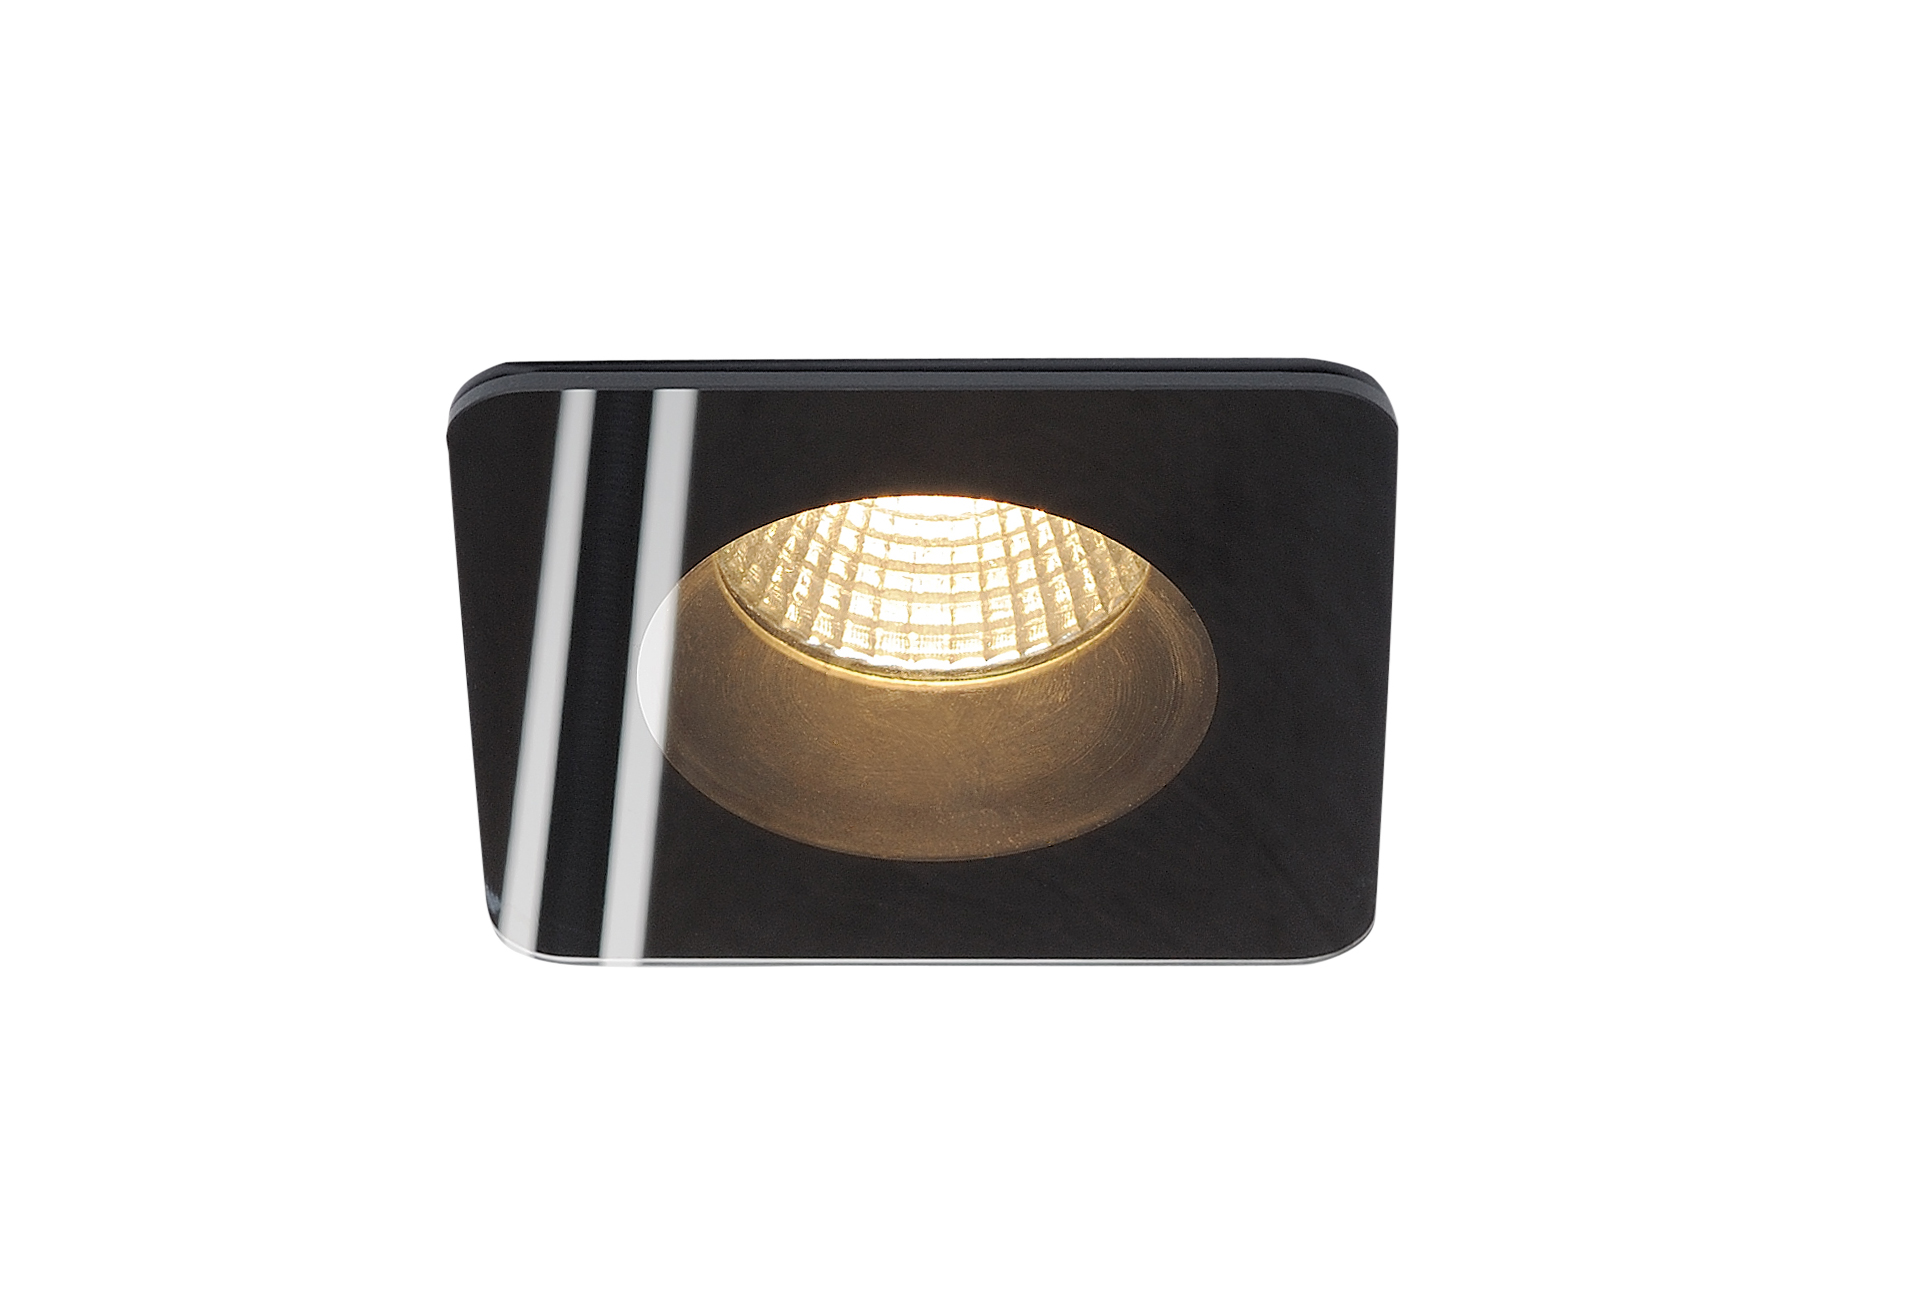 SLV Patta-F Square Downlight